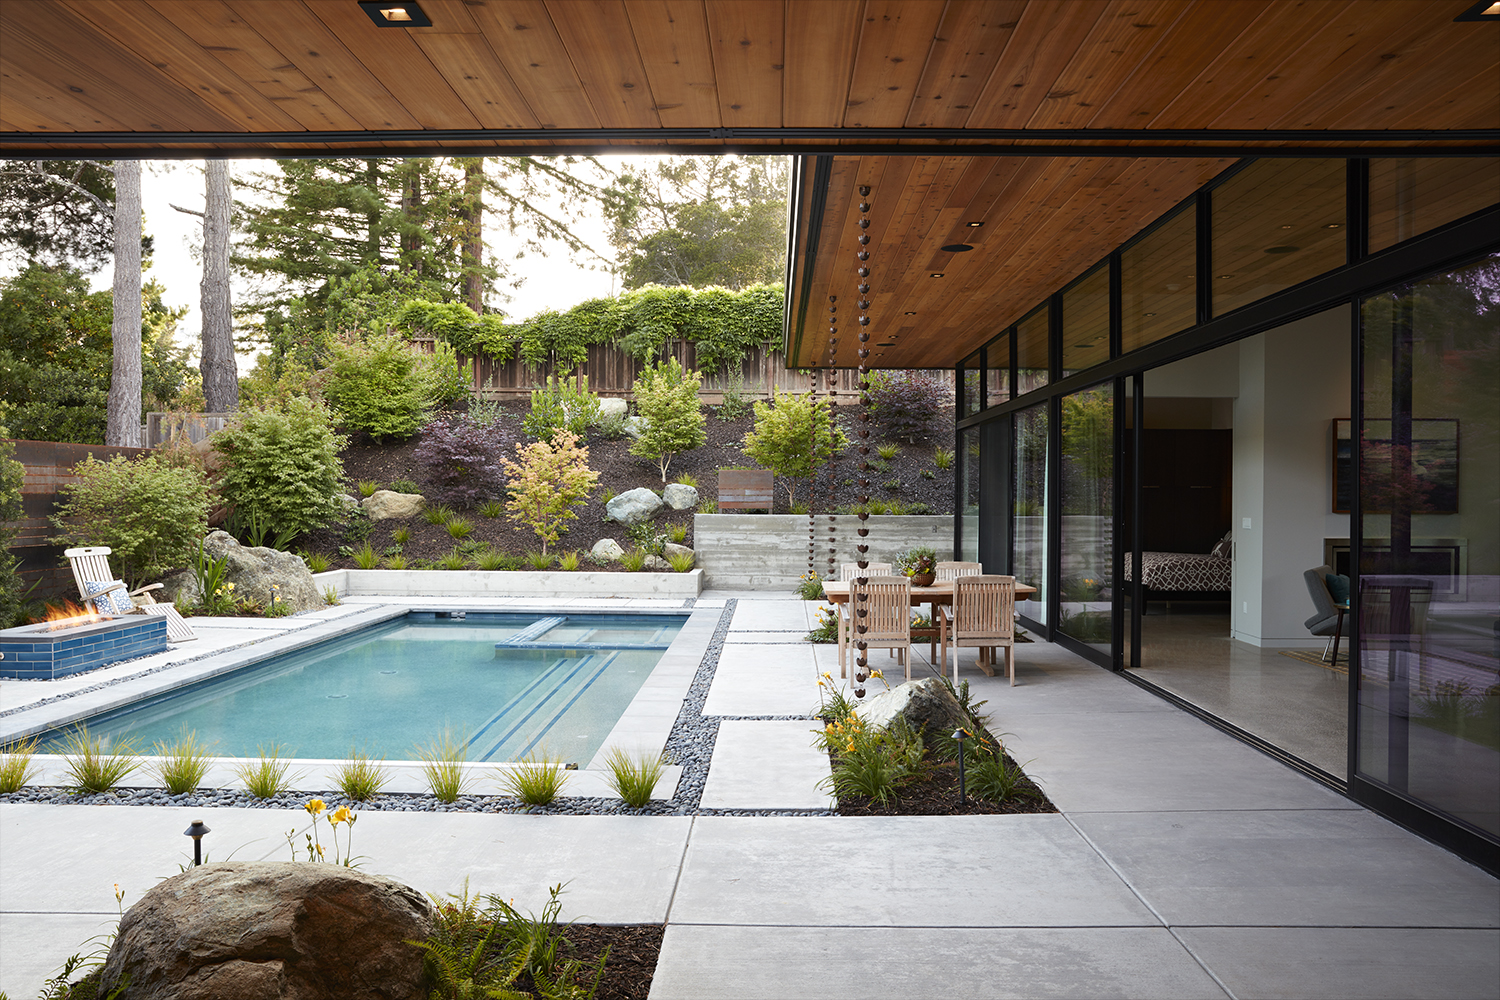 The courtyard houses the pool, firepit and outdoor dining.